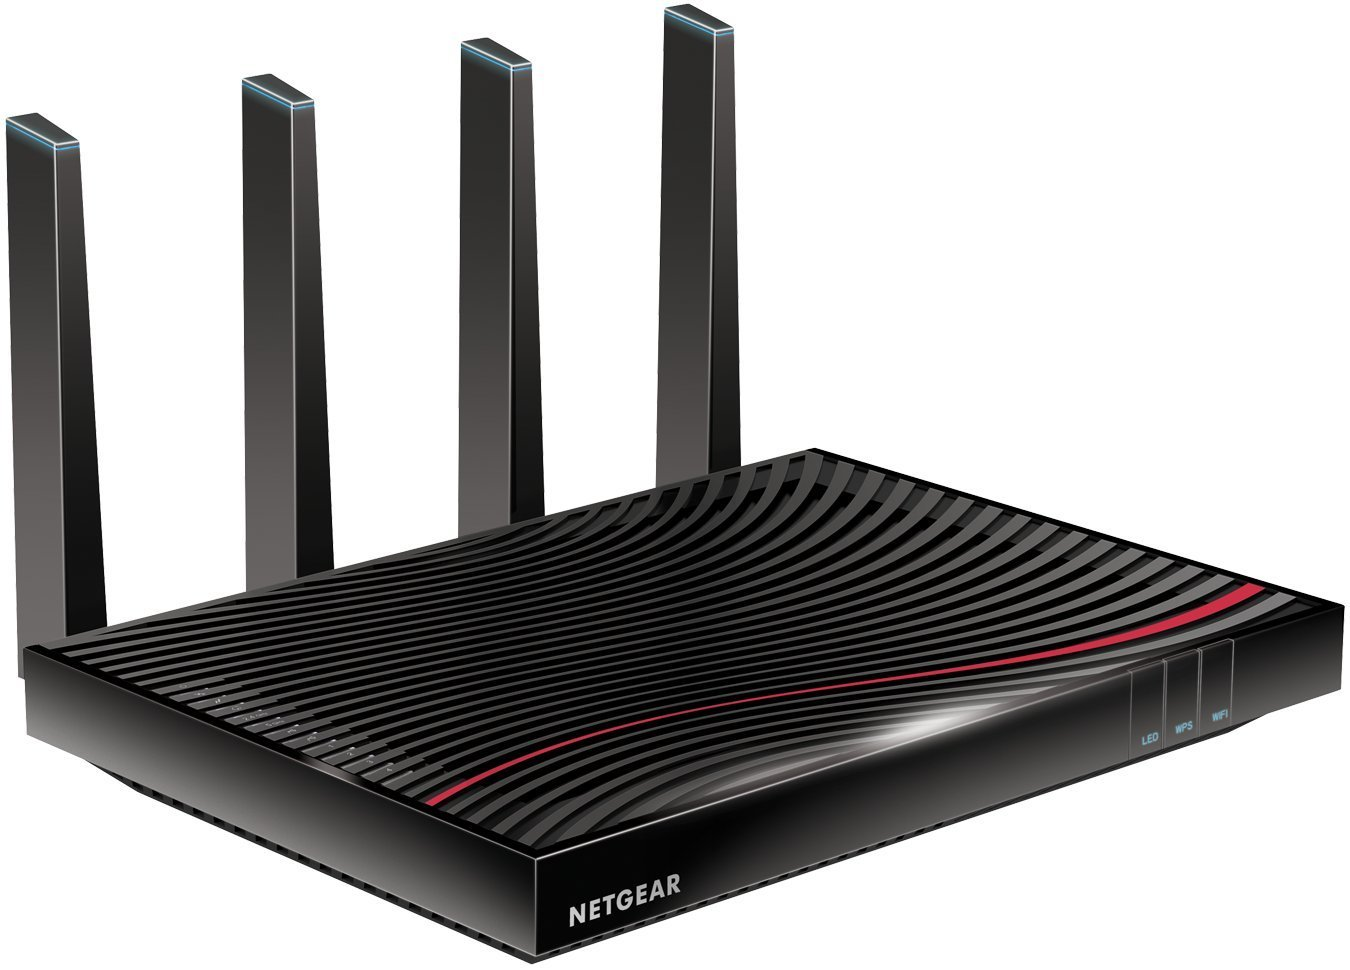 NETGEAR Nighthawk Cable Modem WiFi Router Combo (C7800) - Compatible with Cable Providers Including Xfinity by Comcast, Cox, Spectrum   Cable Plans Up to 2 Gigabits   AC3200 WiFi Speed   DOCSIS 3.1 by NETGEAR